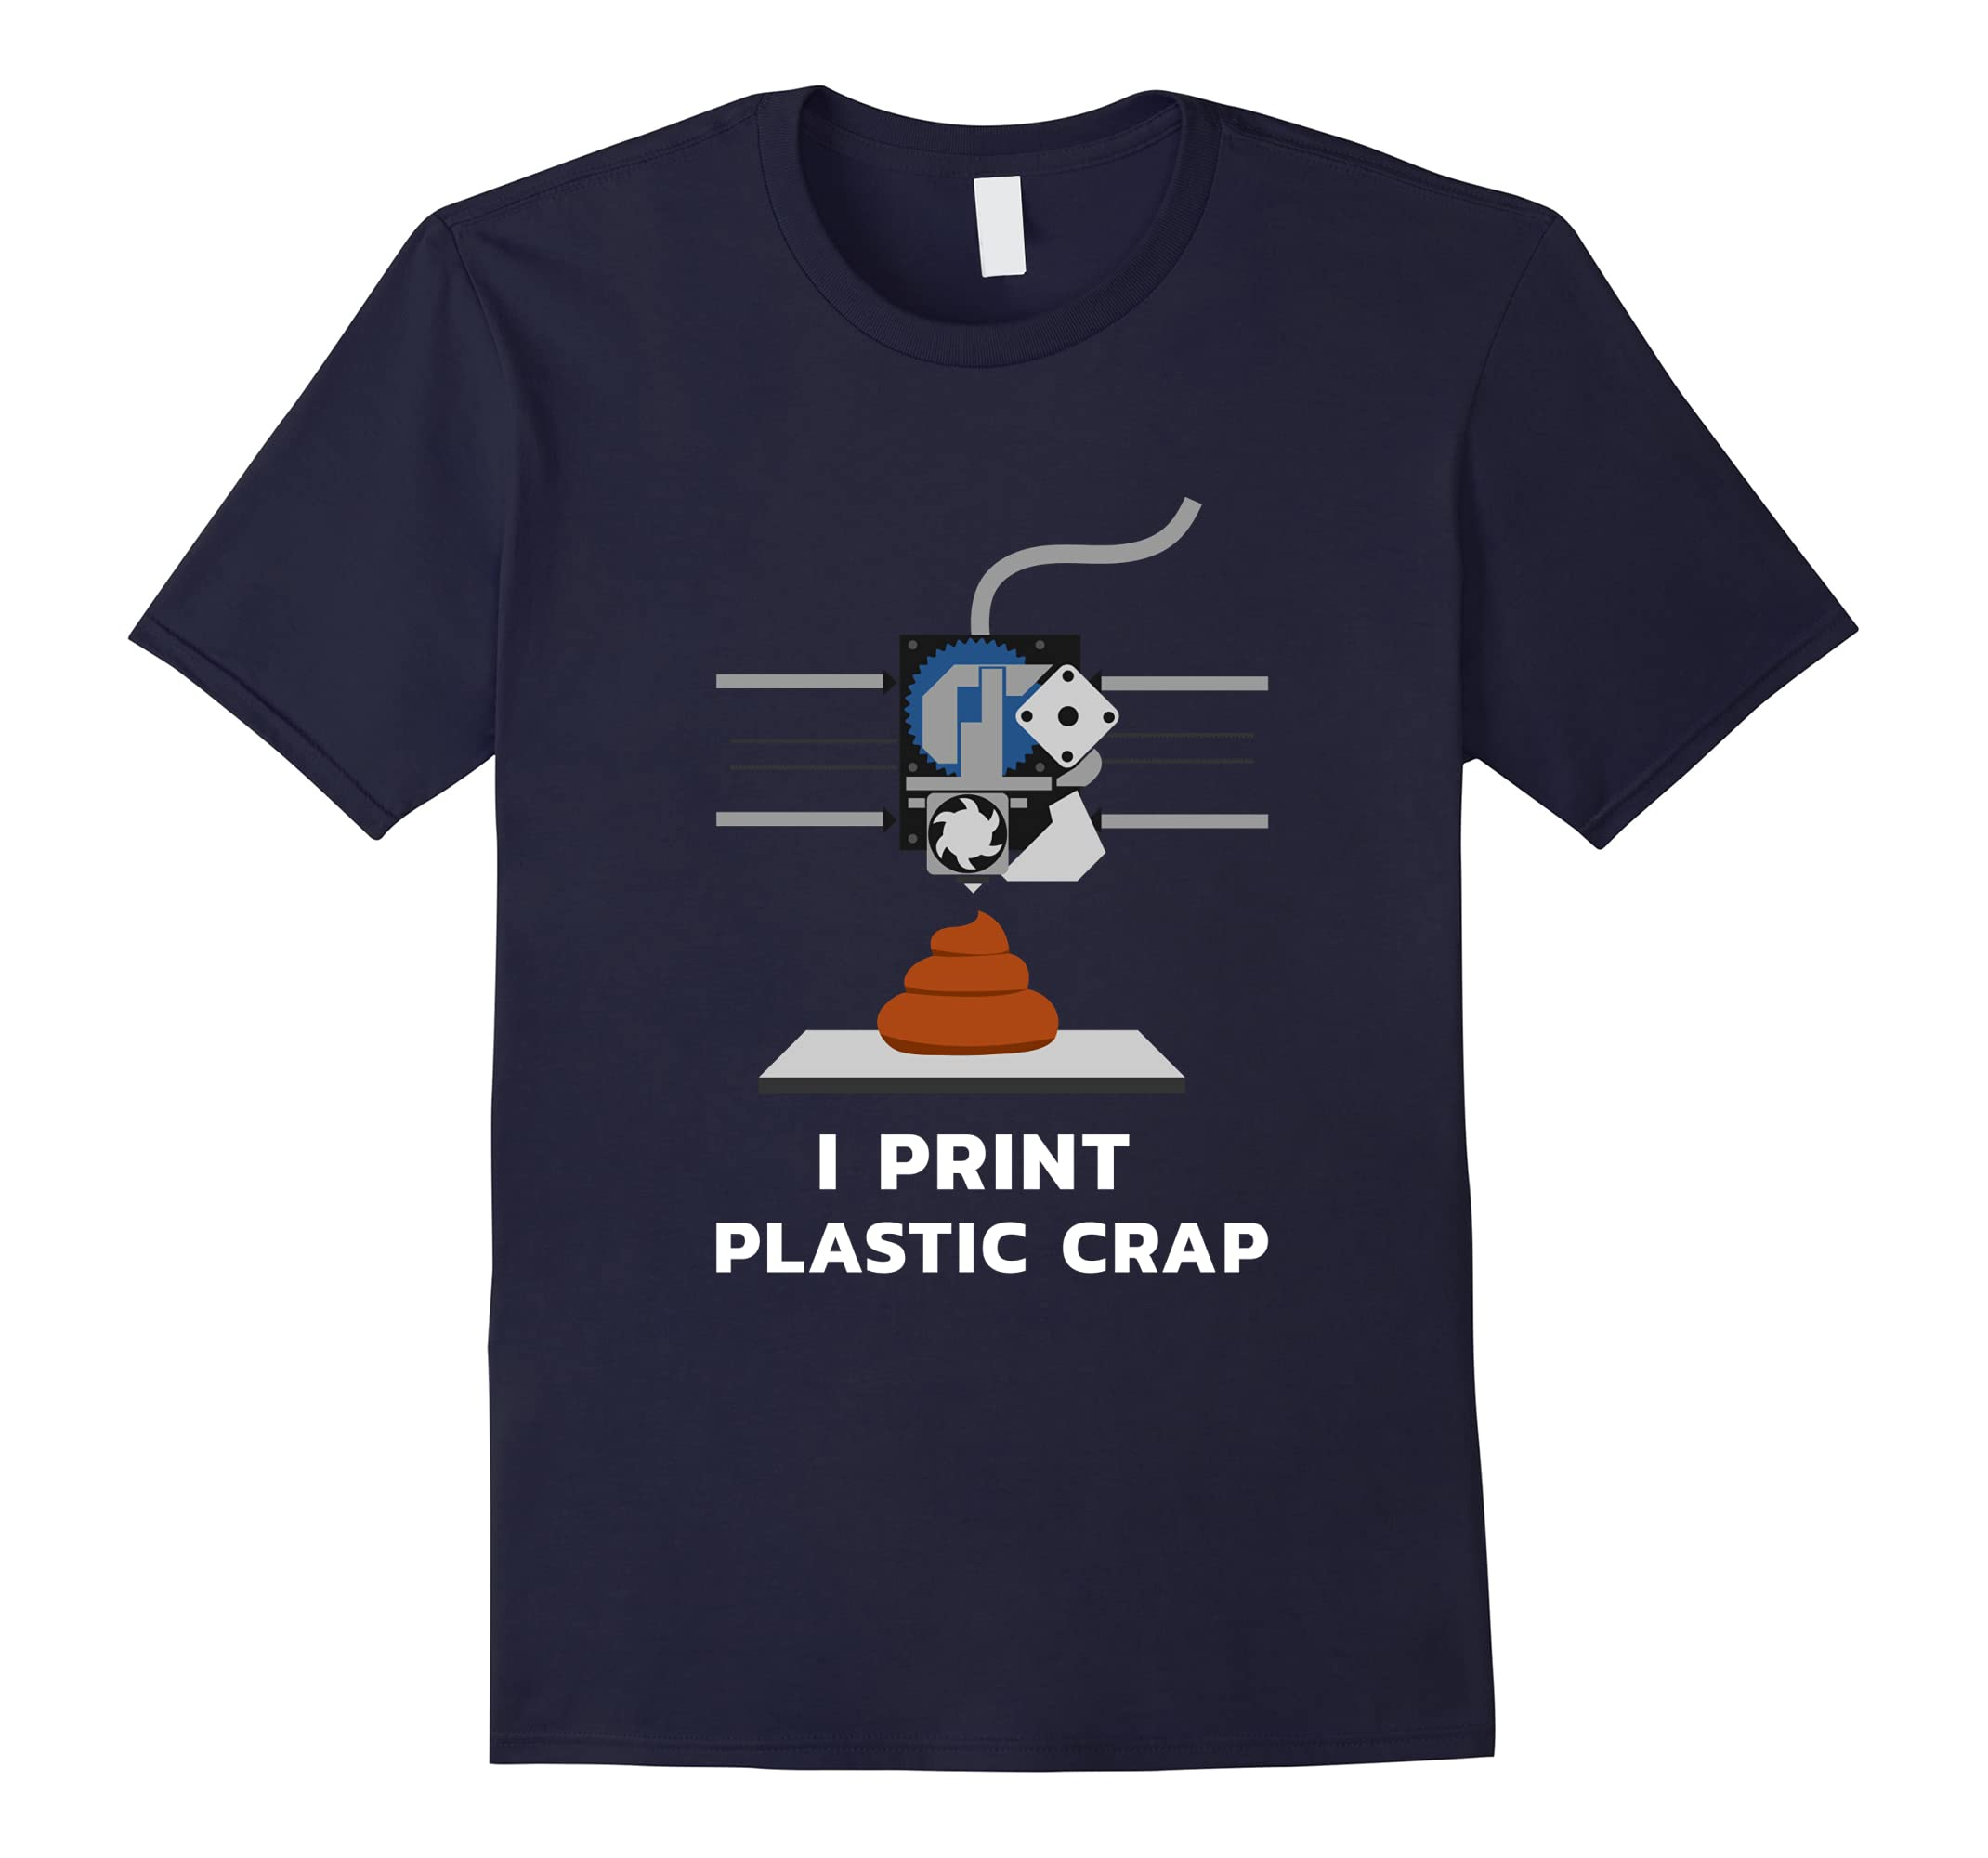 3D Printing Tshirt - Funny Gift - Shirt For Men And Woman-ah my shirt one gift